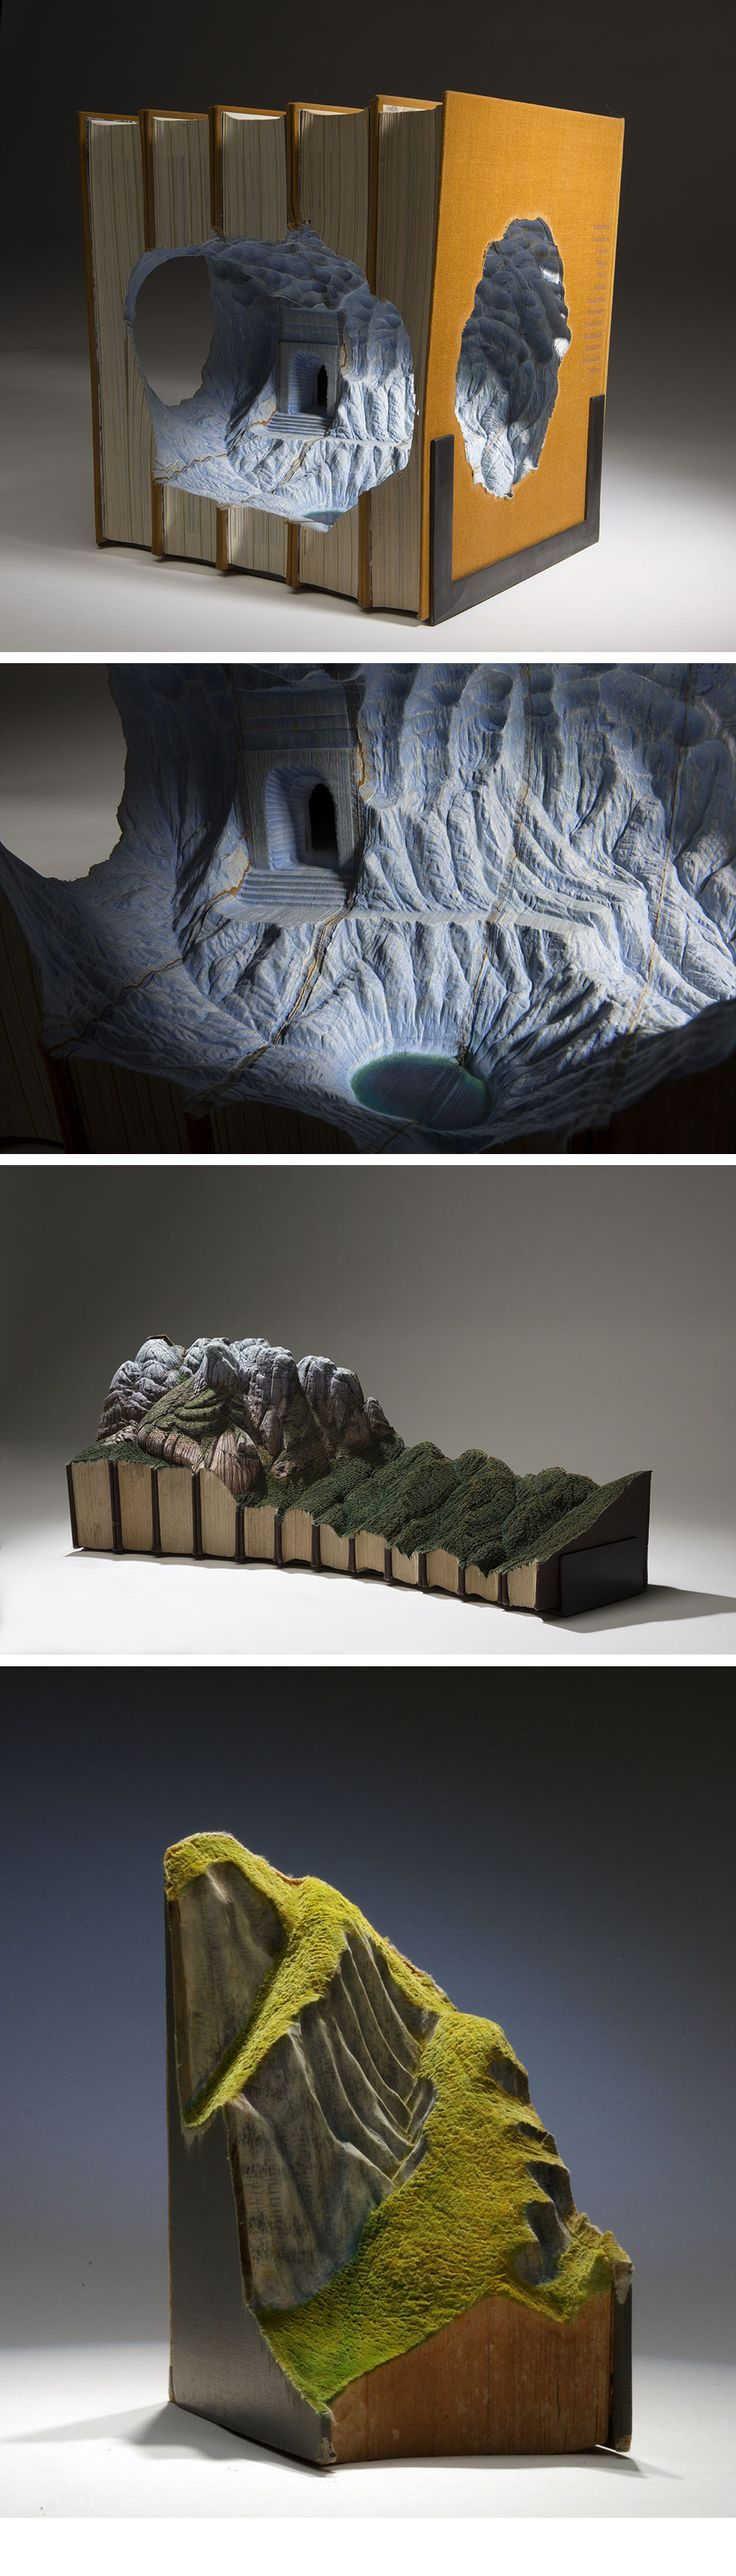 Magnificent New Carved Book Landscapes and Architecture by Guy Laramée